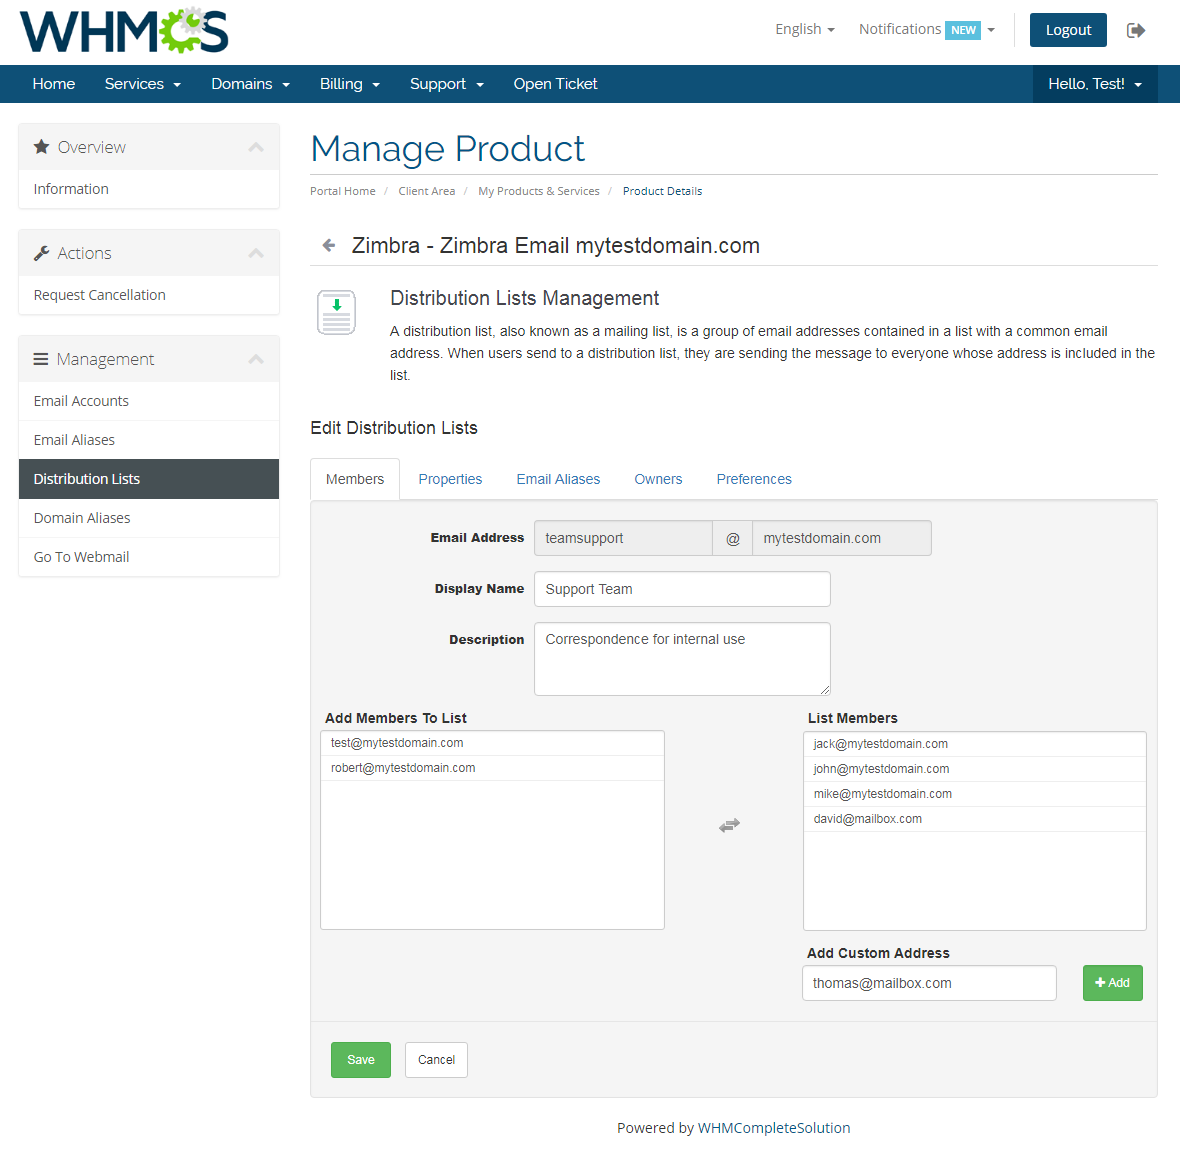 Zimbra Email For WHMCS: Screen 6